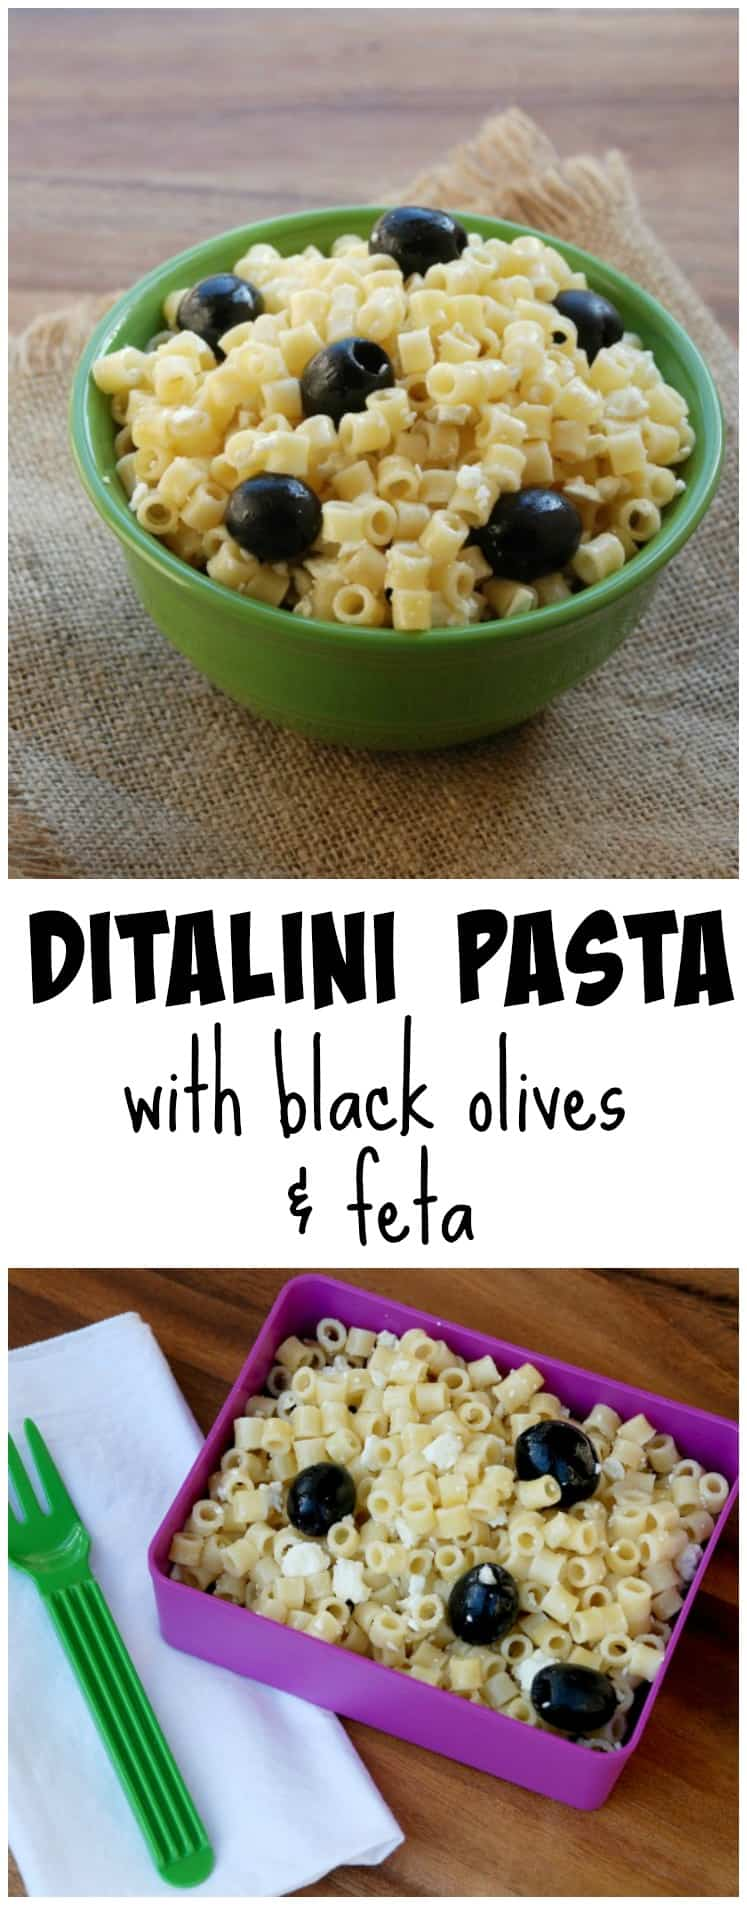 This ditalini pasta with black olives and feta is a family favorite! Plus, you can have dinner together in 15 minutes!